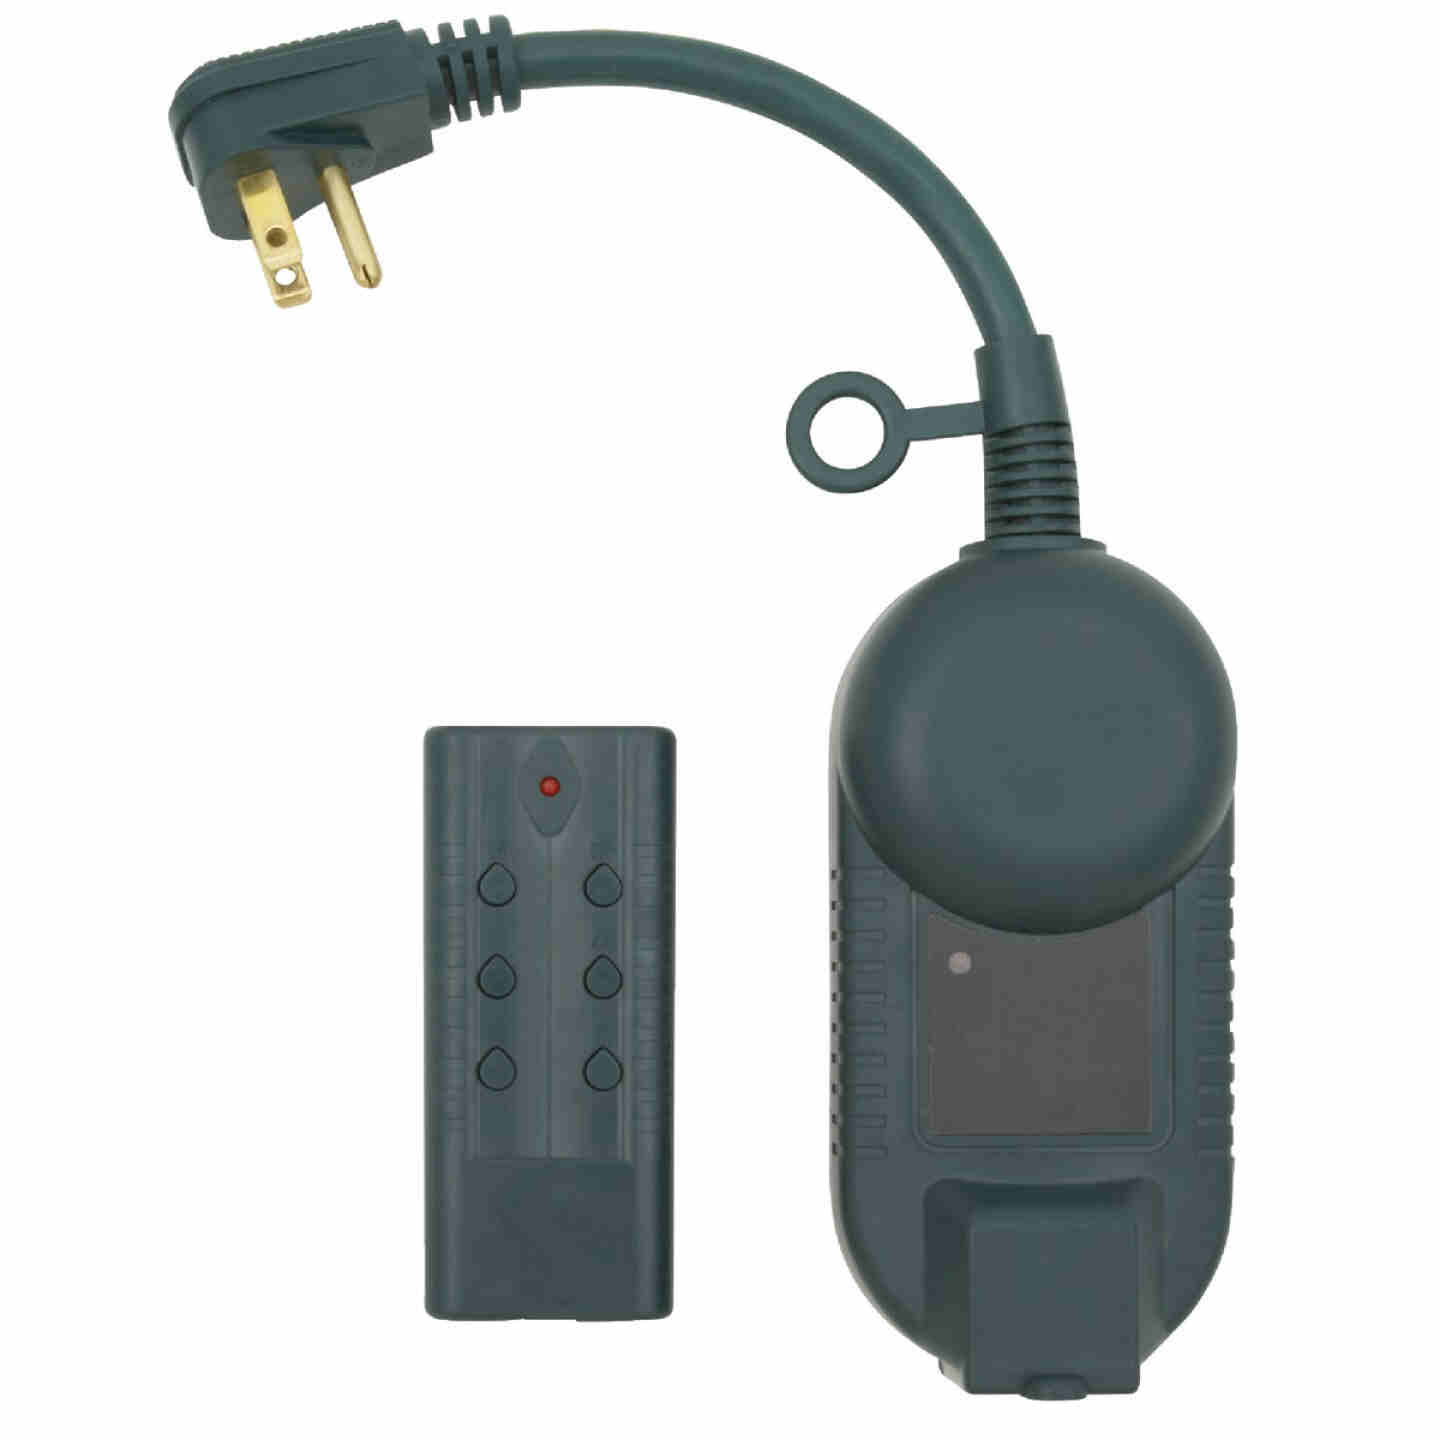 Do it 12.5A 120V 1500W Green Outdoor Timer with Remote Image 1